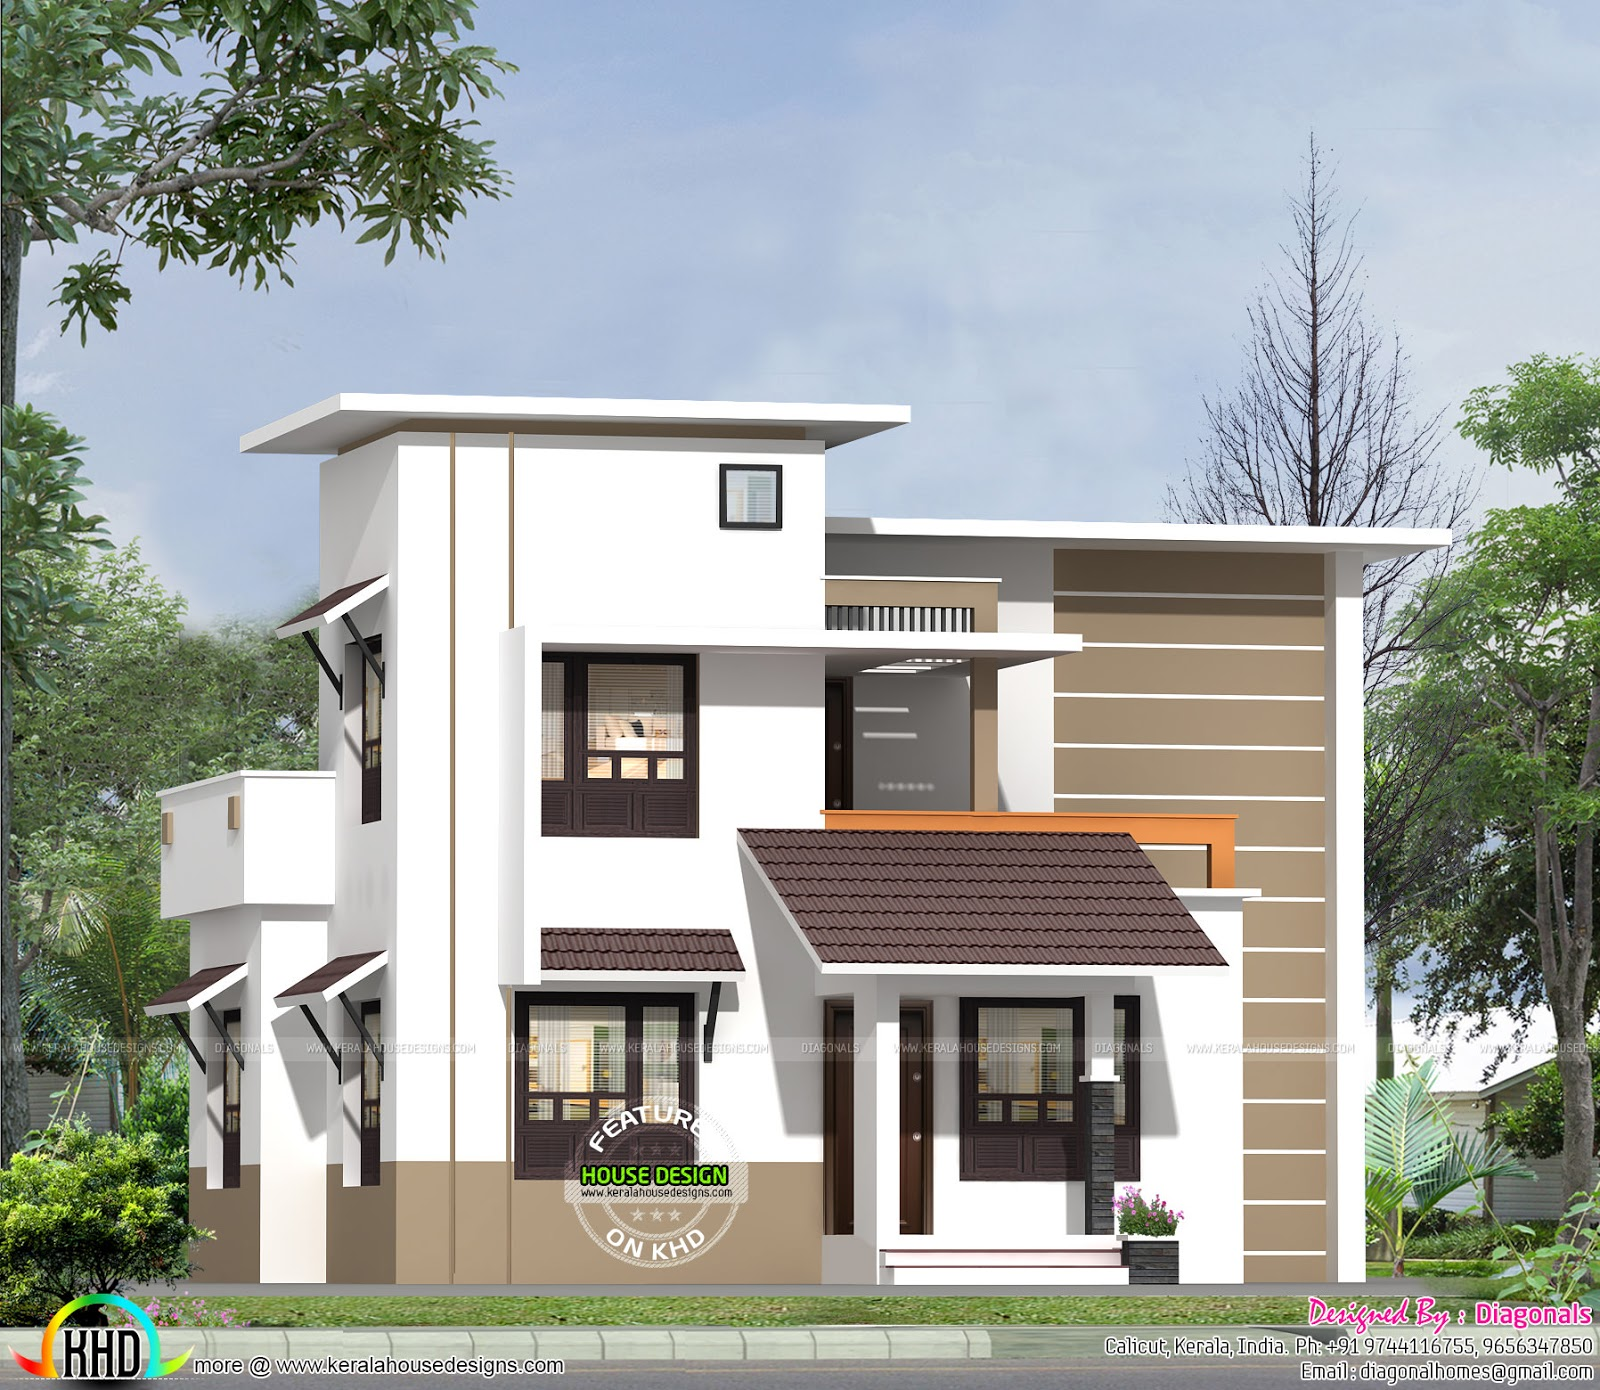 Affordable low cost home kerala home design and floor plans for House designs kerala style low cost